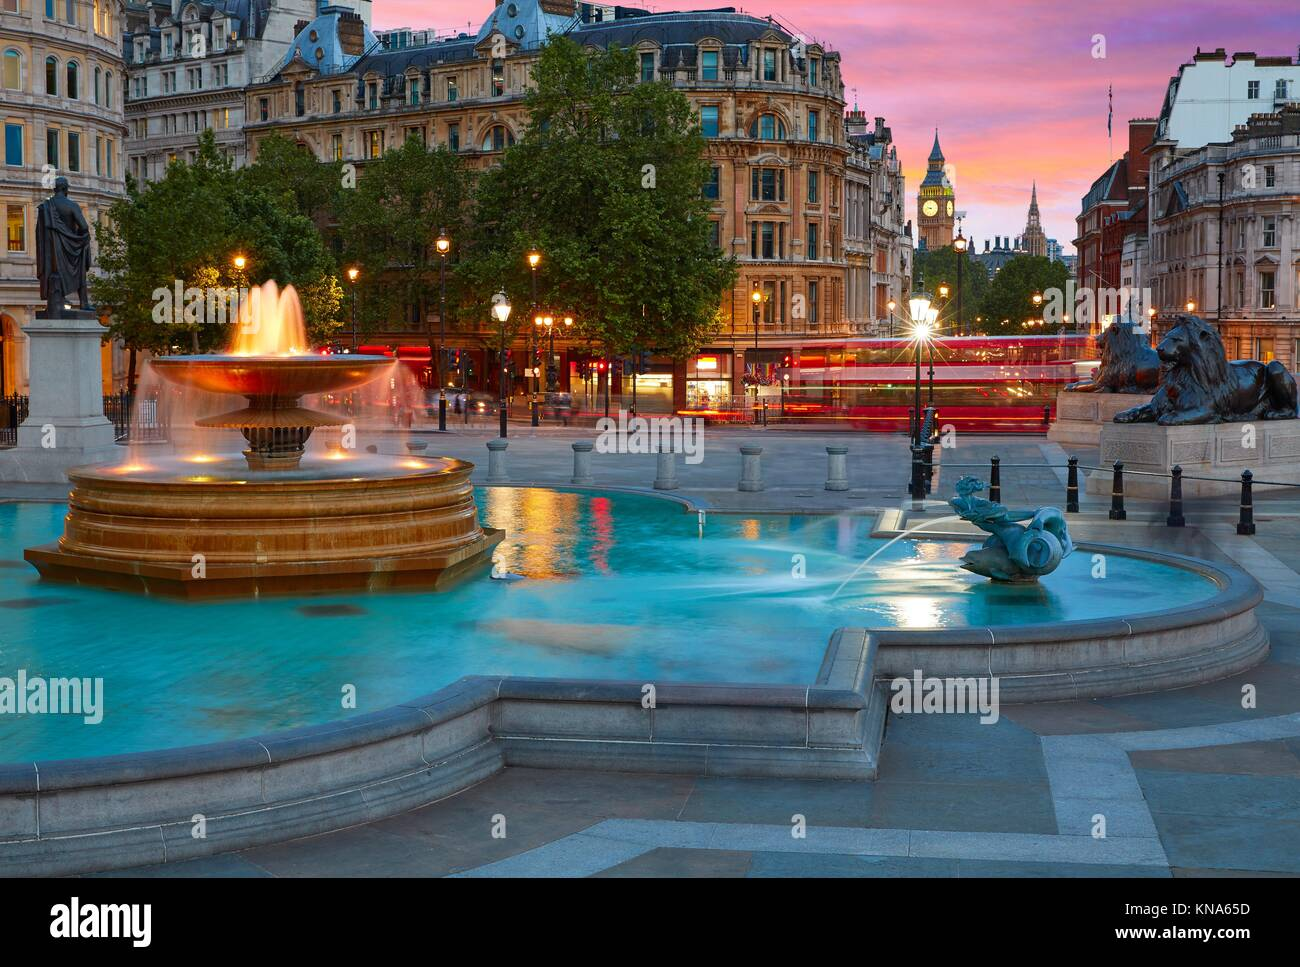 London Trafalgar Square fountain at sunset England. - Stock Image